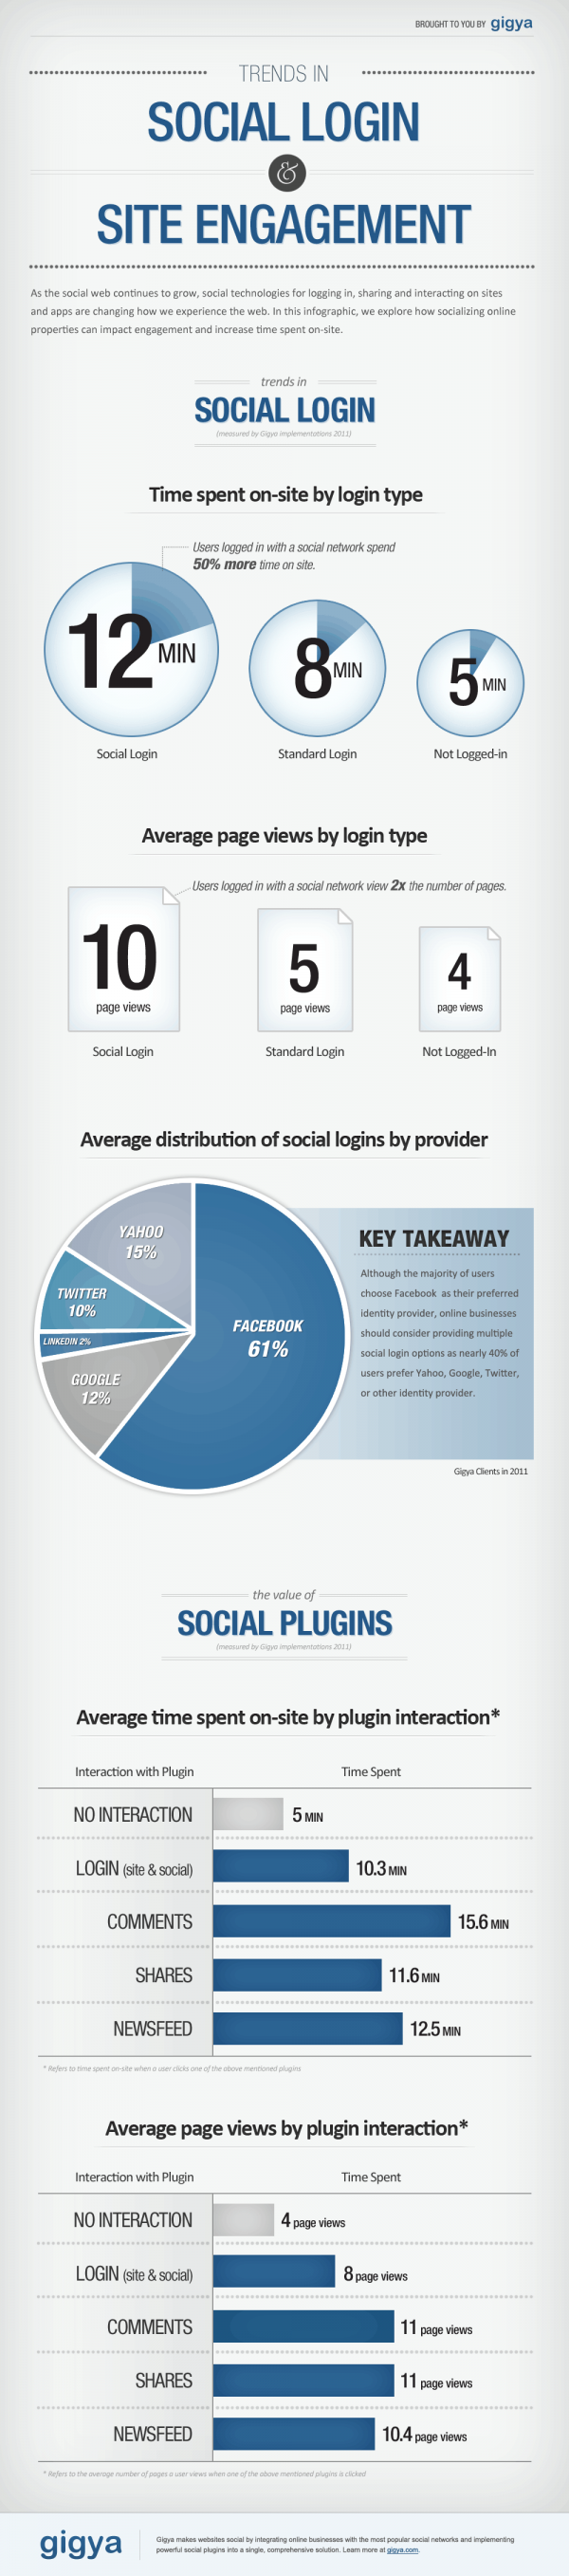 social login and social plugins